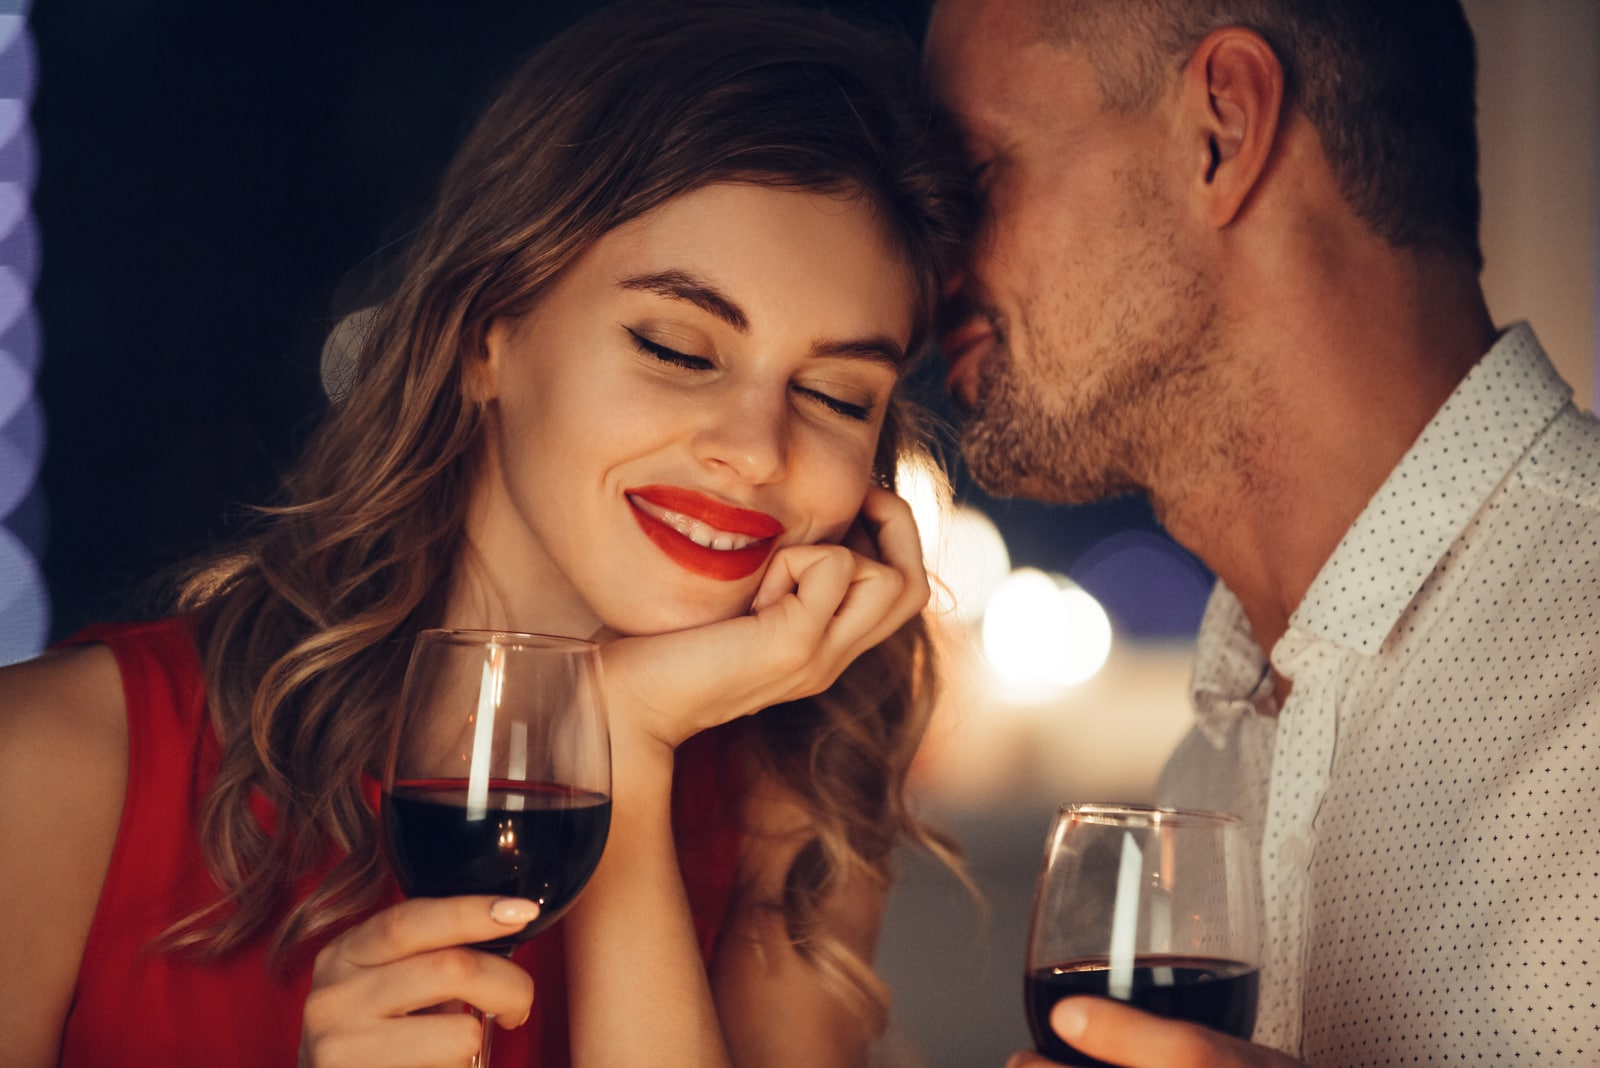 the man whispers in the woman's ear